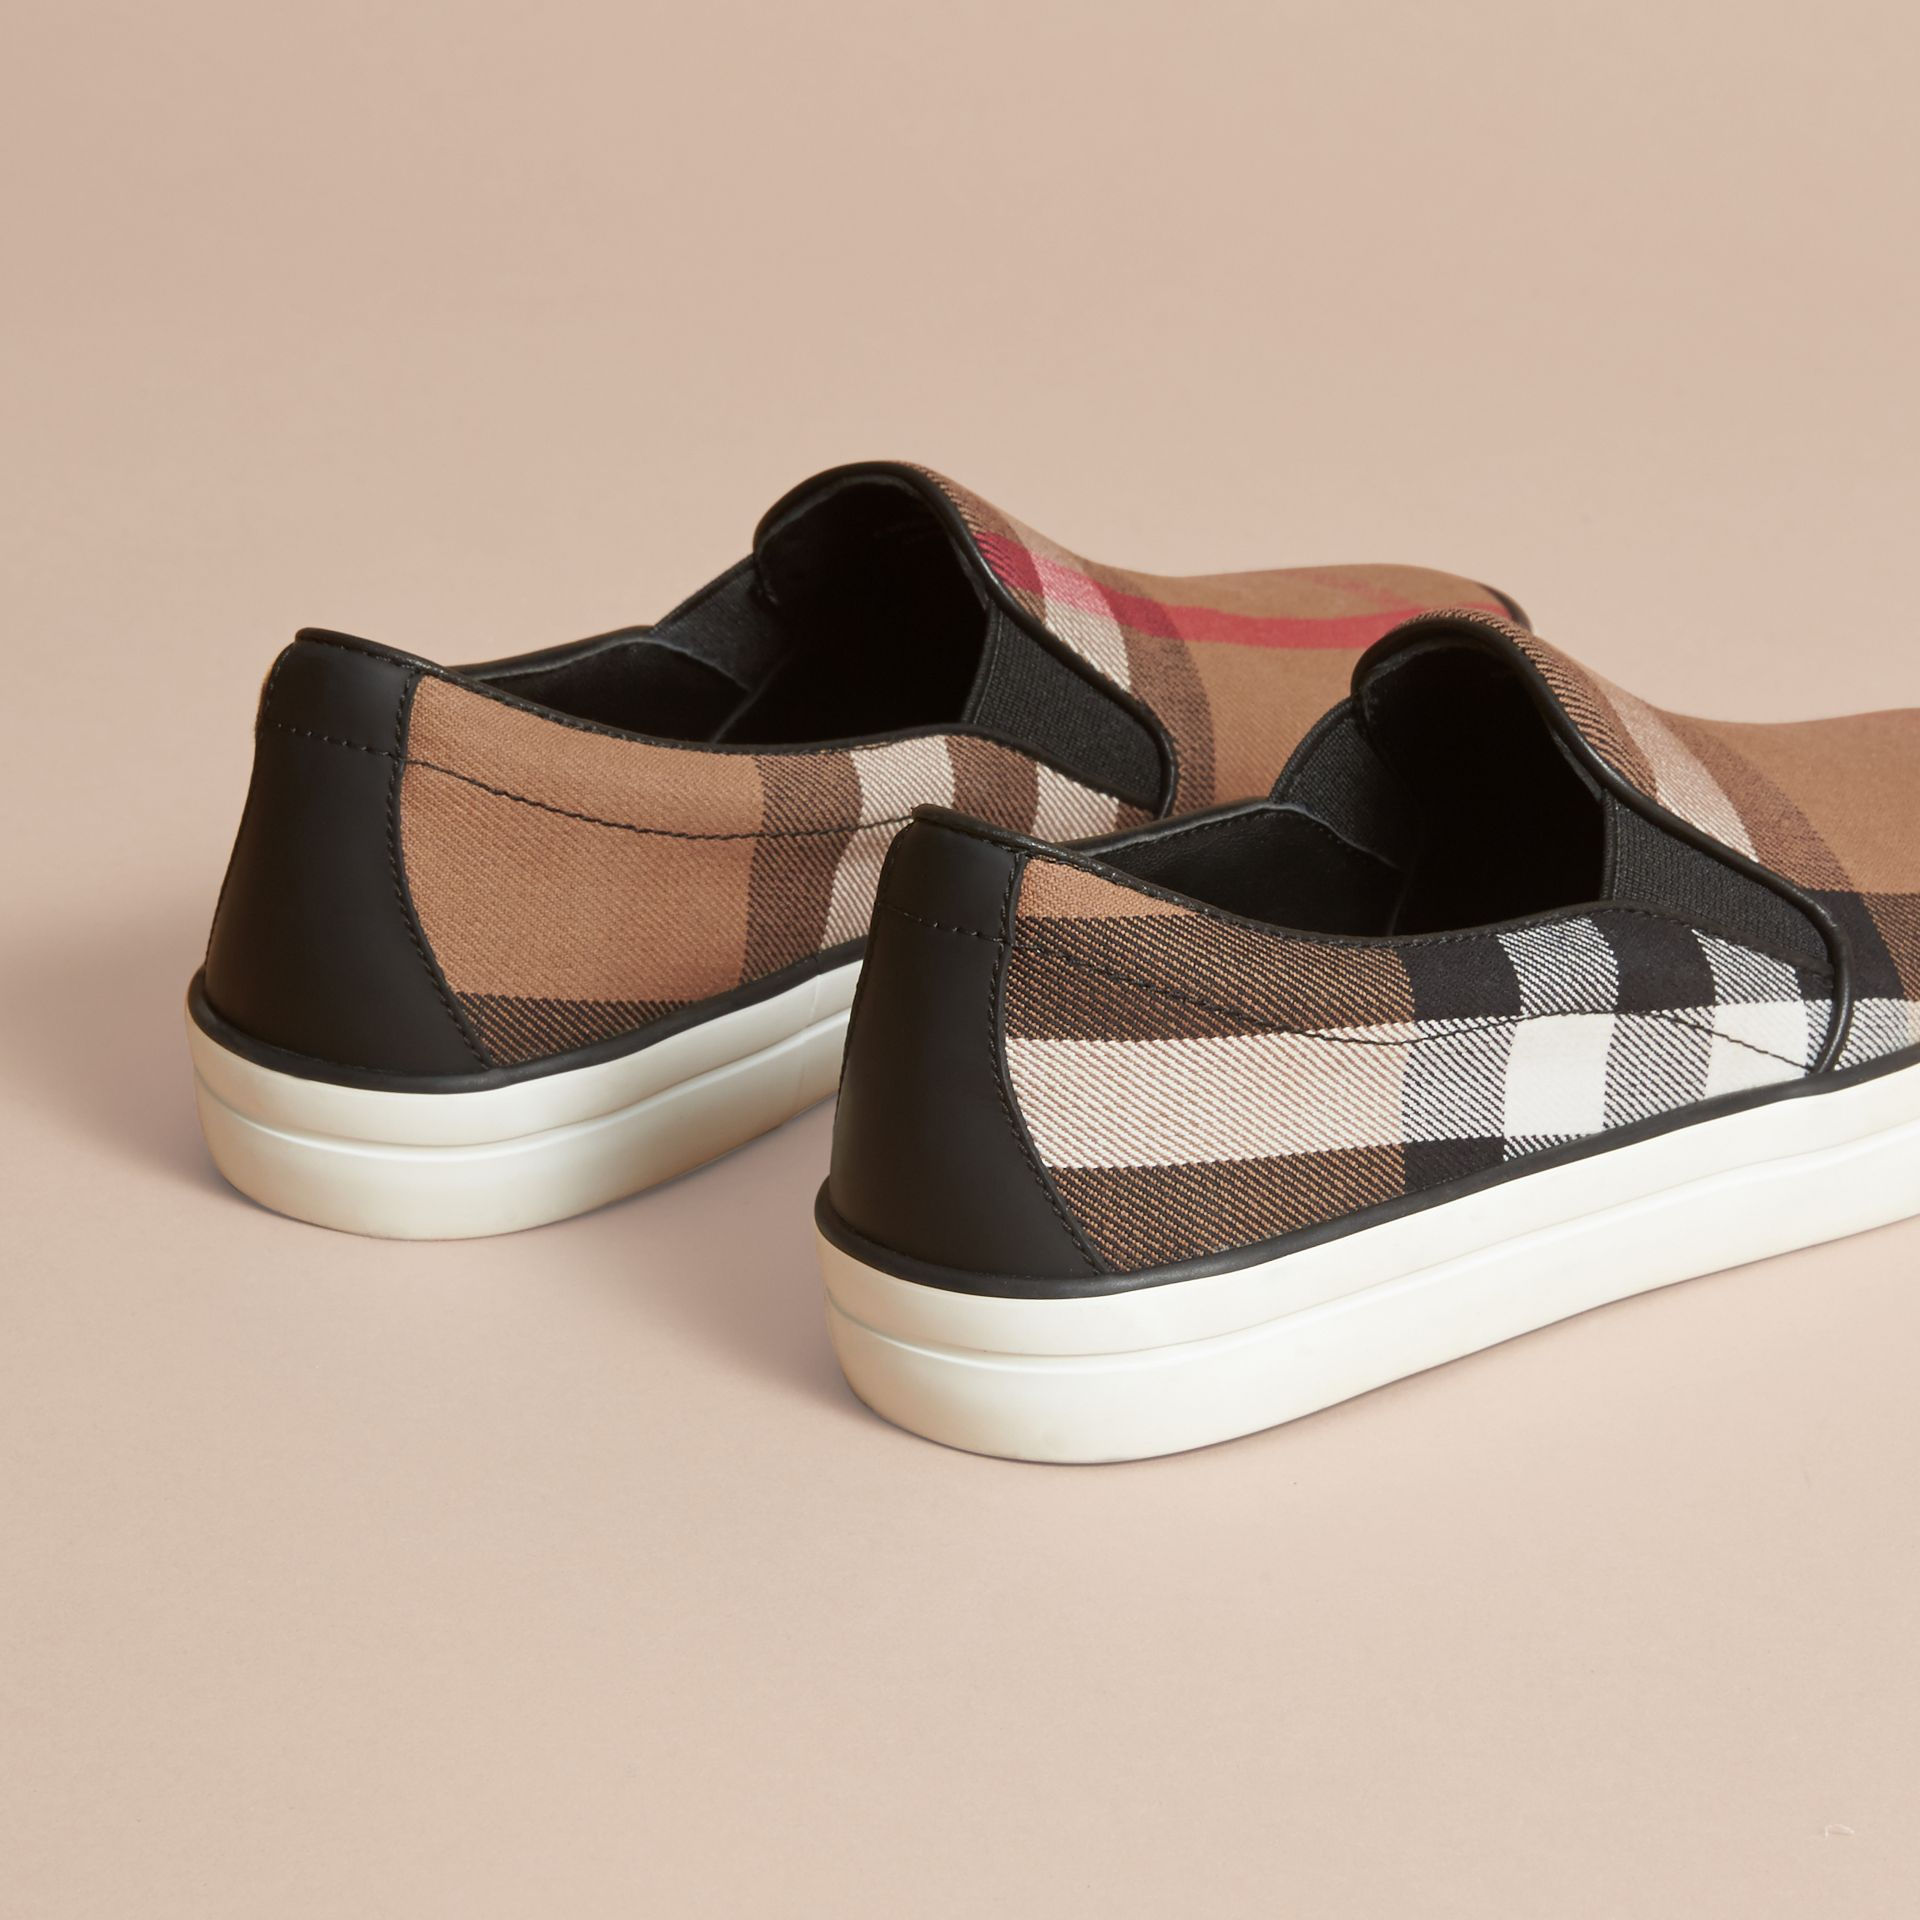 House Check and Leather Slip-on Sneakers in Classic - Women | Burberry Singapore - gallery image 3